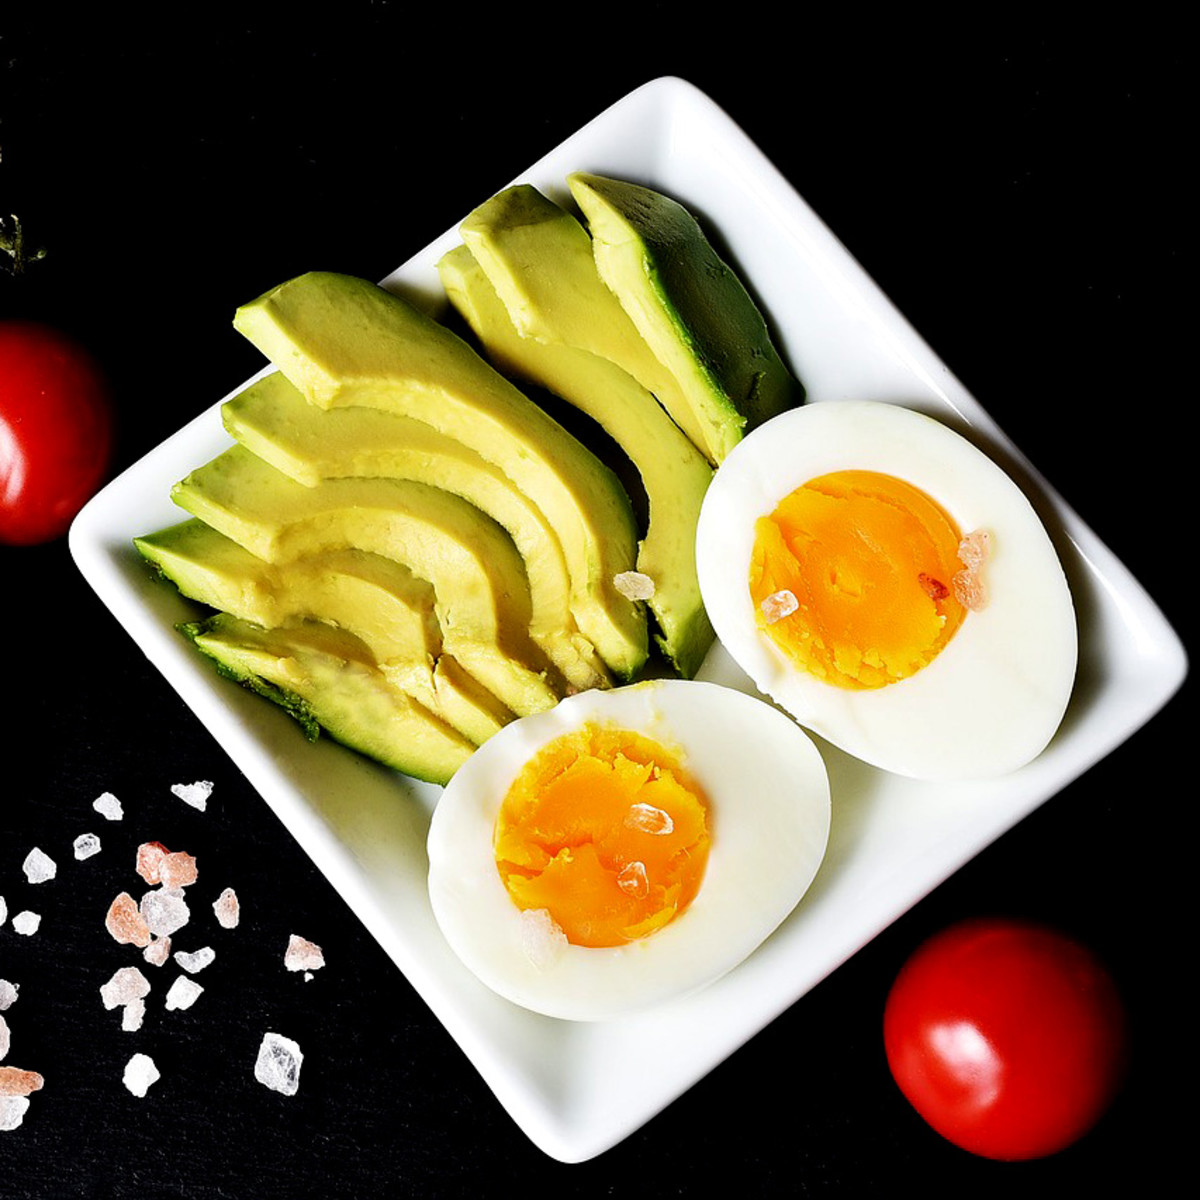 The Top 20 Foods to Eat on the Ketogenic Diet